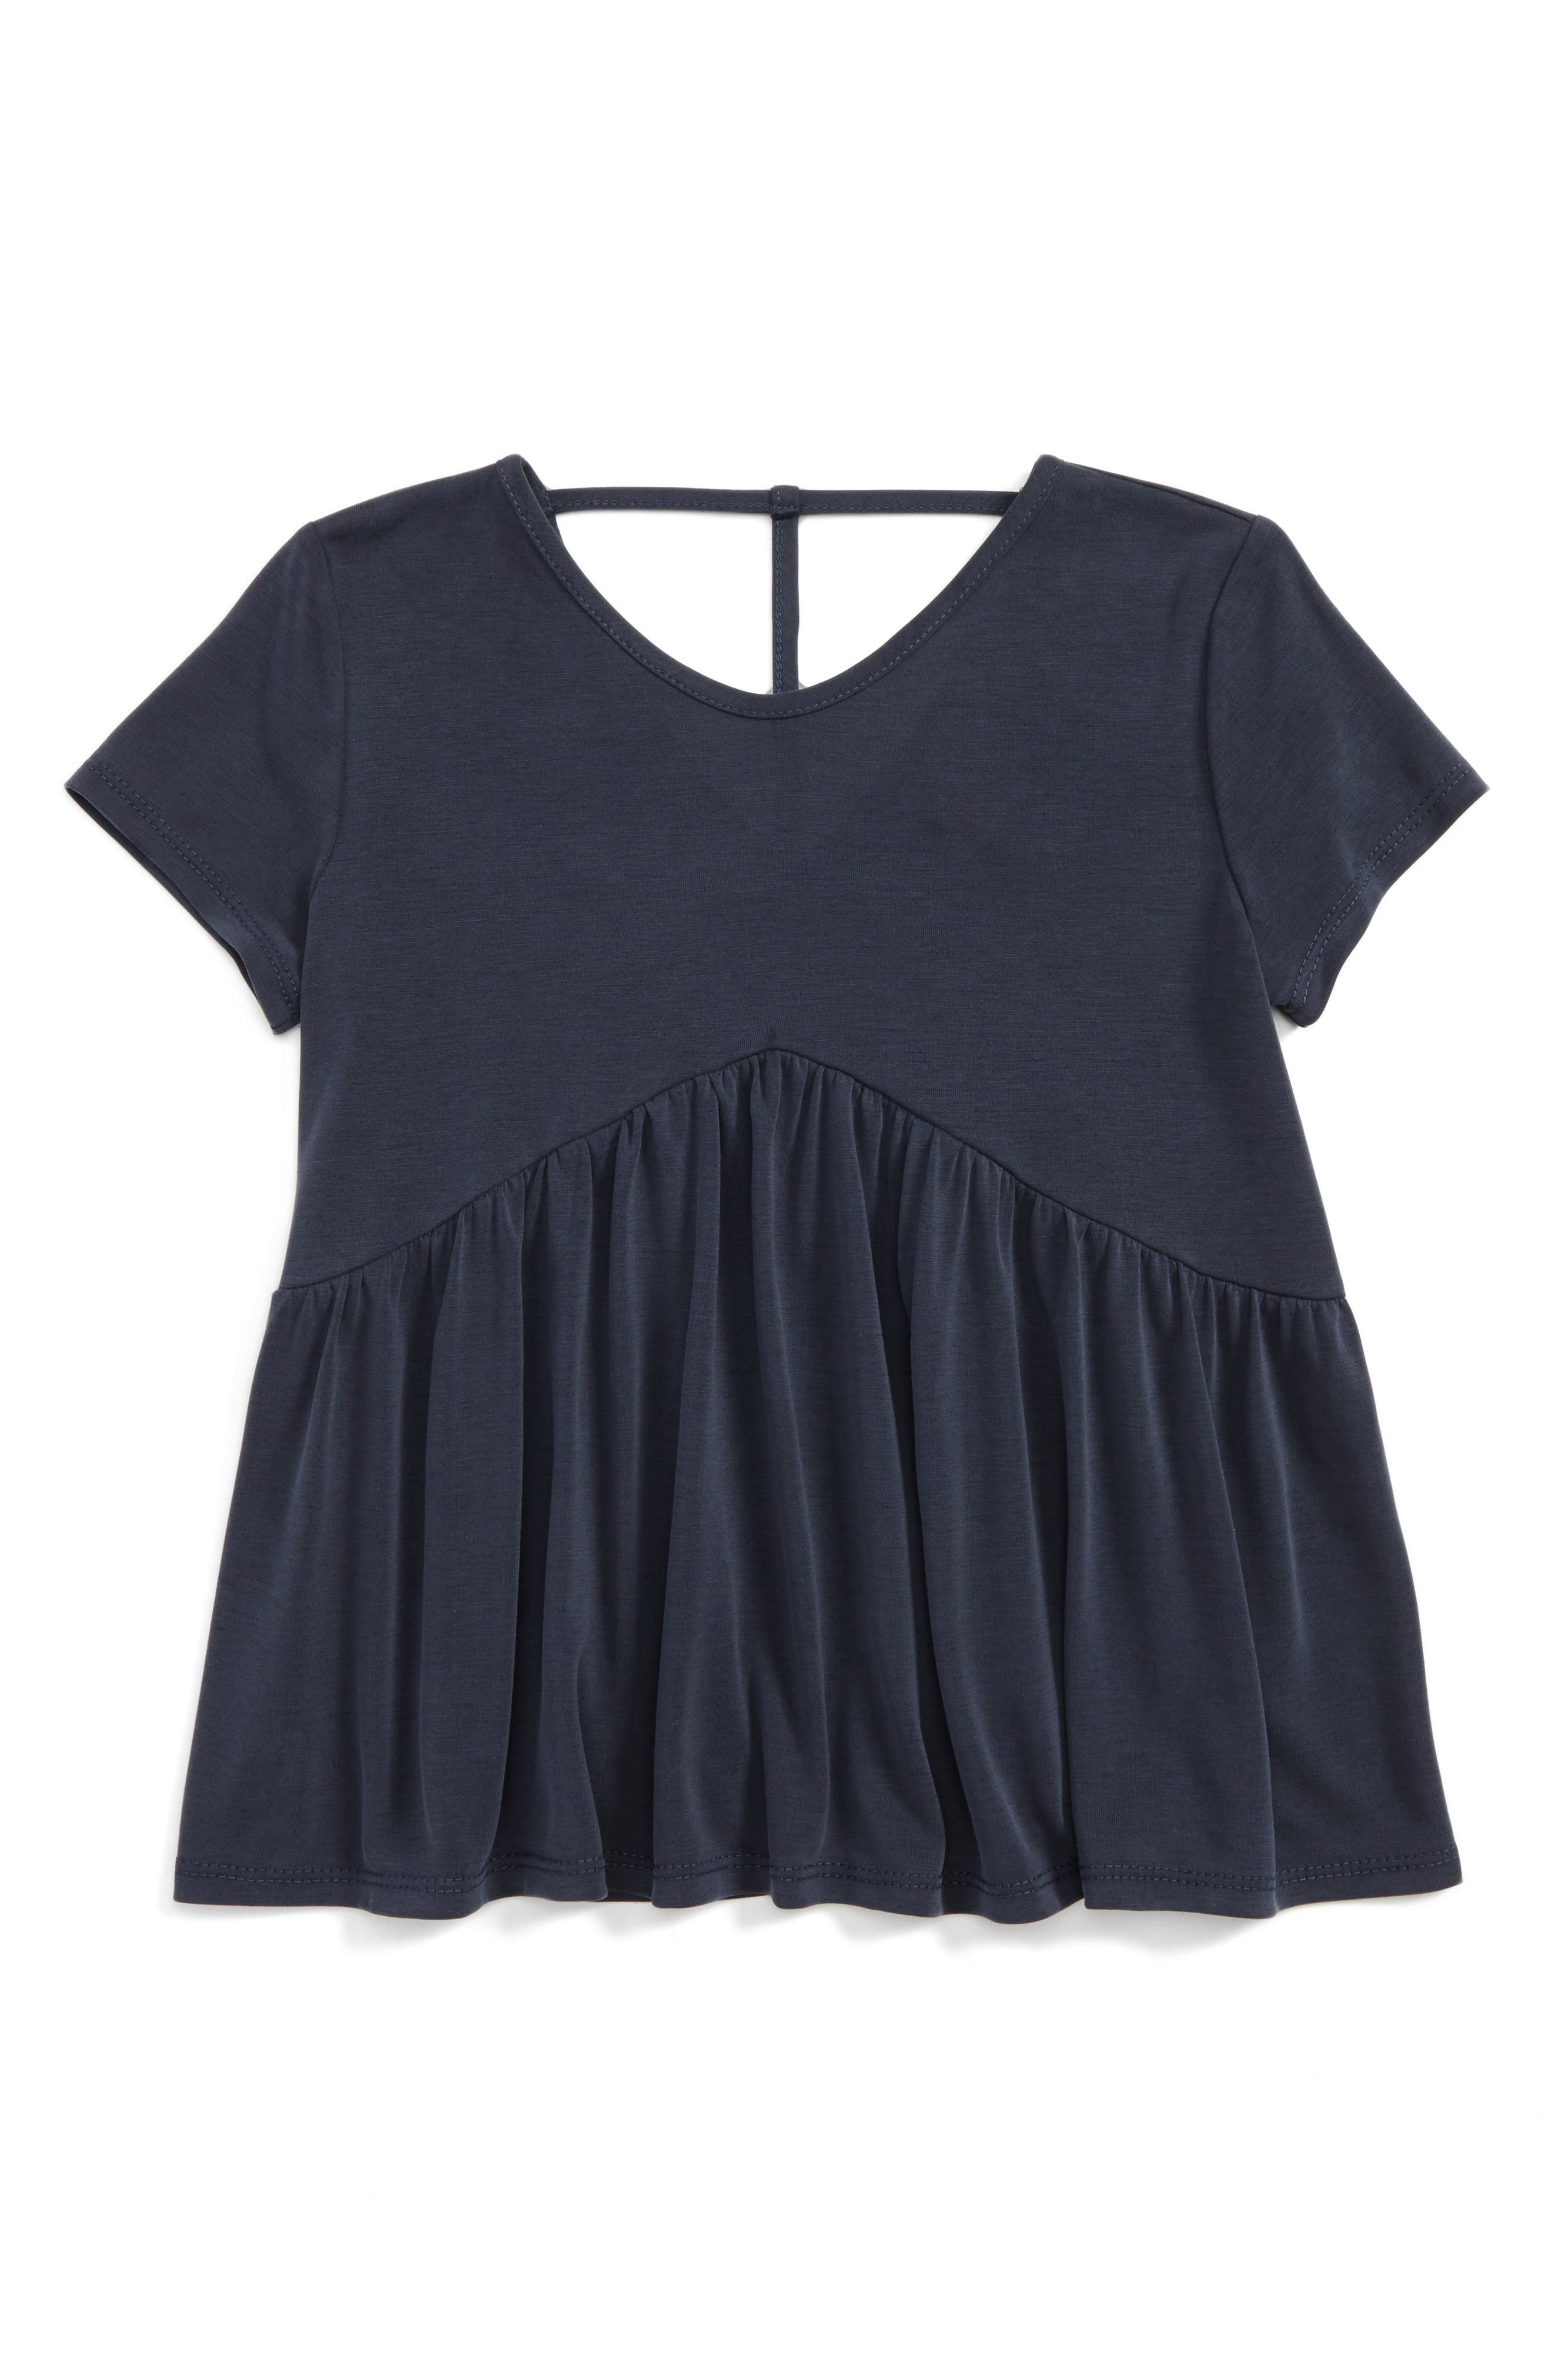 Alternate Image 1 Selected - For All Seasons Ruffle Tee (Big Girls)